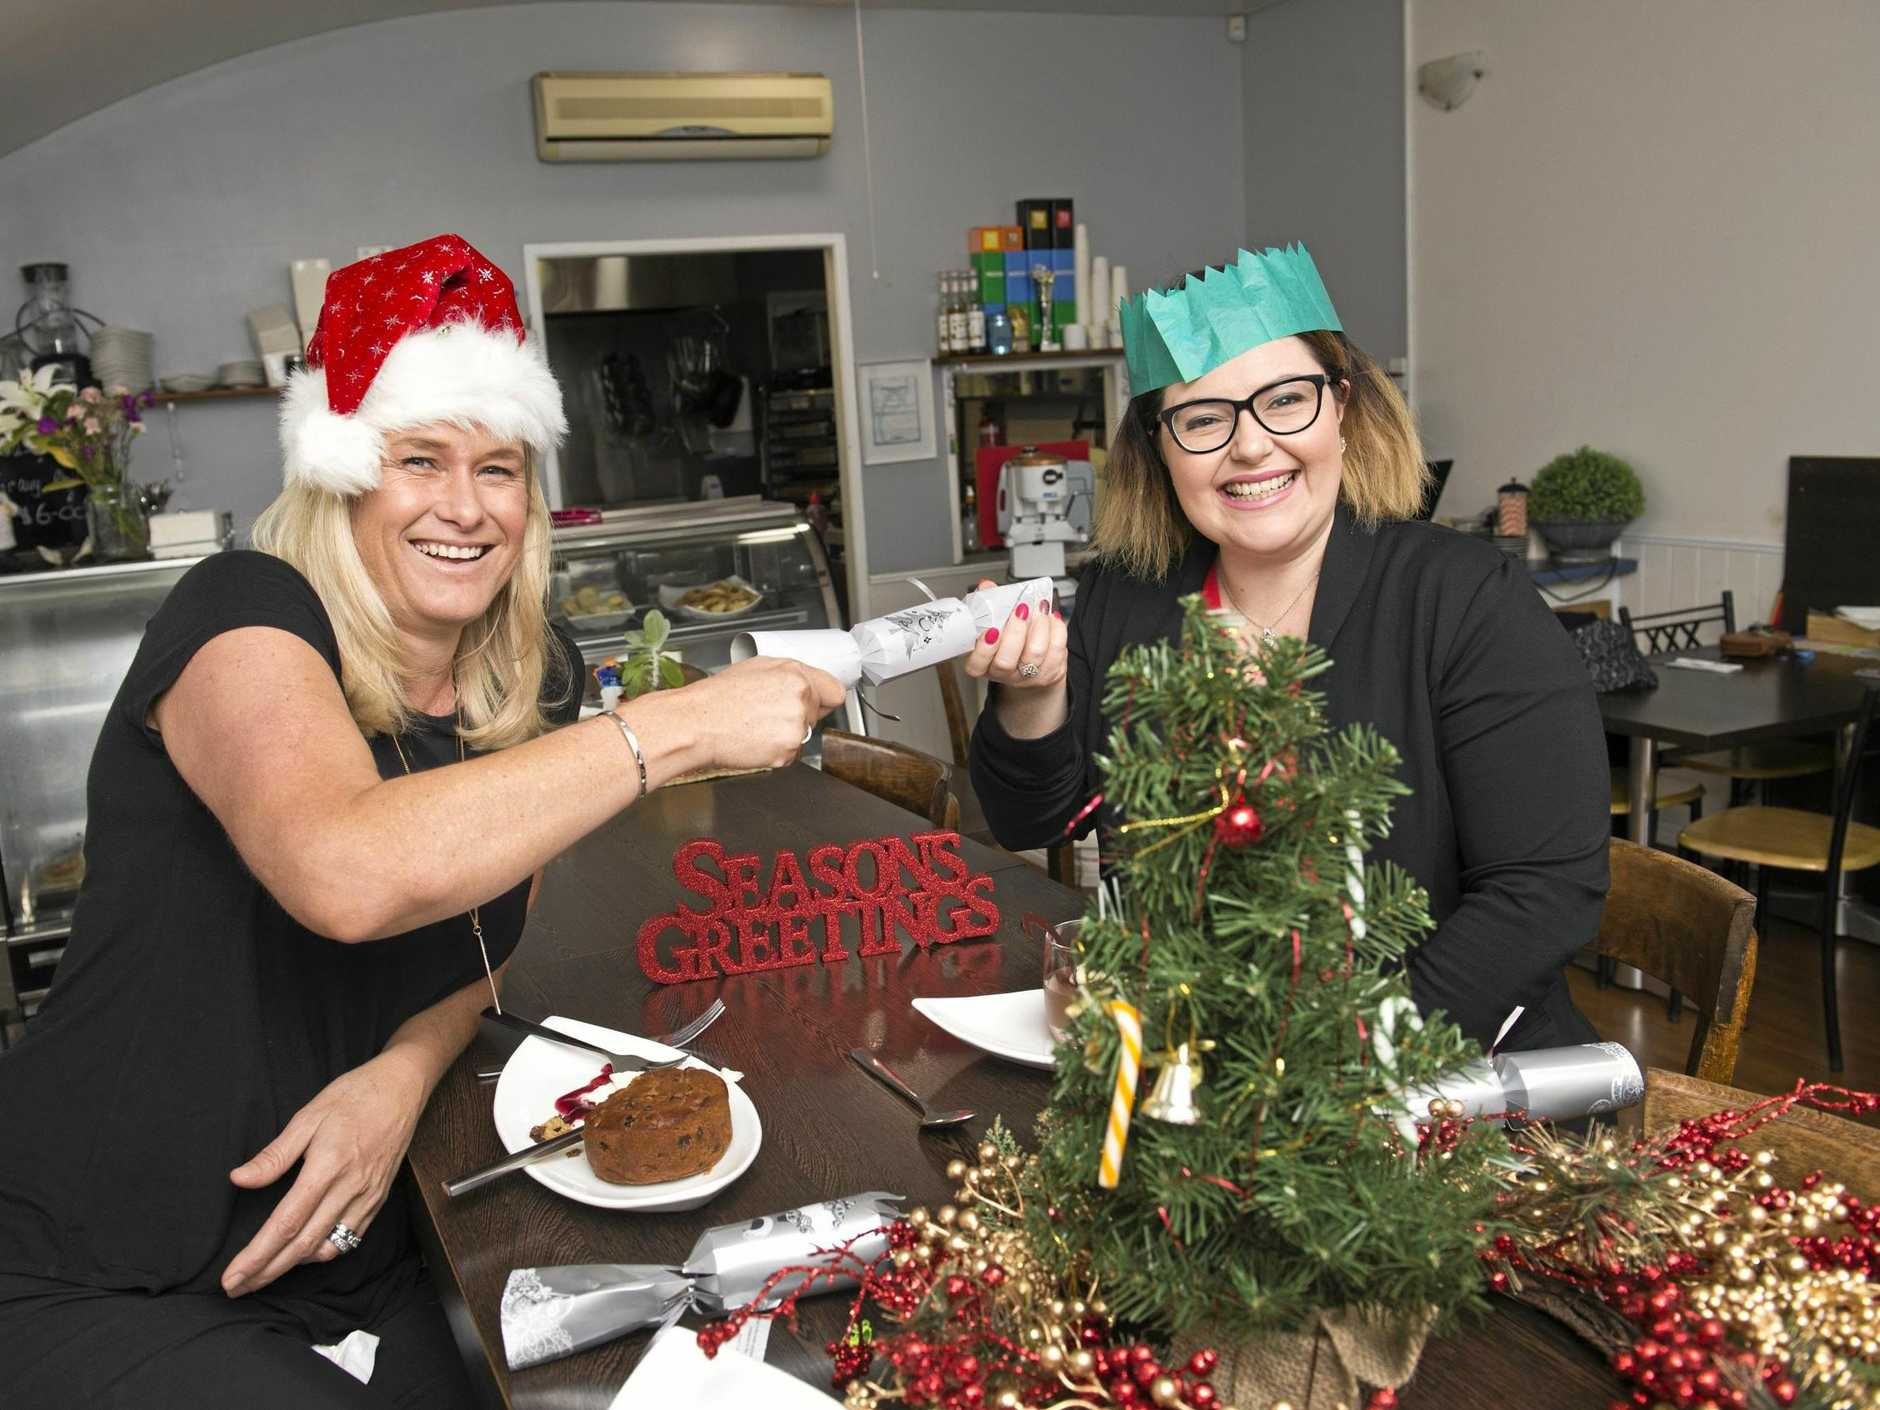 Toowoomba Hospital Foundation chief executive Alison Kennedy (left) and Annie White from ParisiAnn Patisserie get ready for Toowoomba's Neighbourhood Christmas Luncheon presented by METRO Church and the Toowoomba Hospital Foundation.